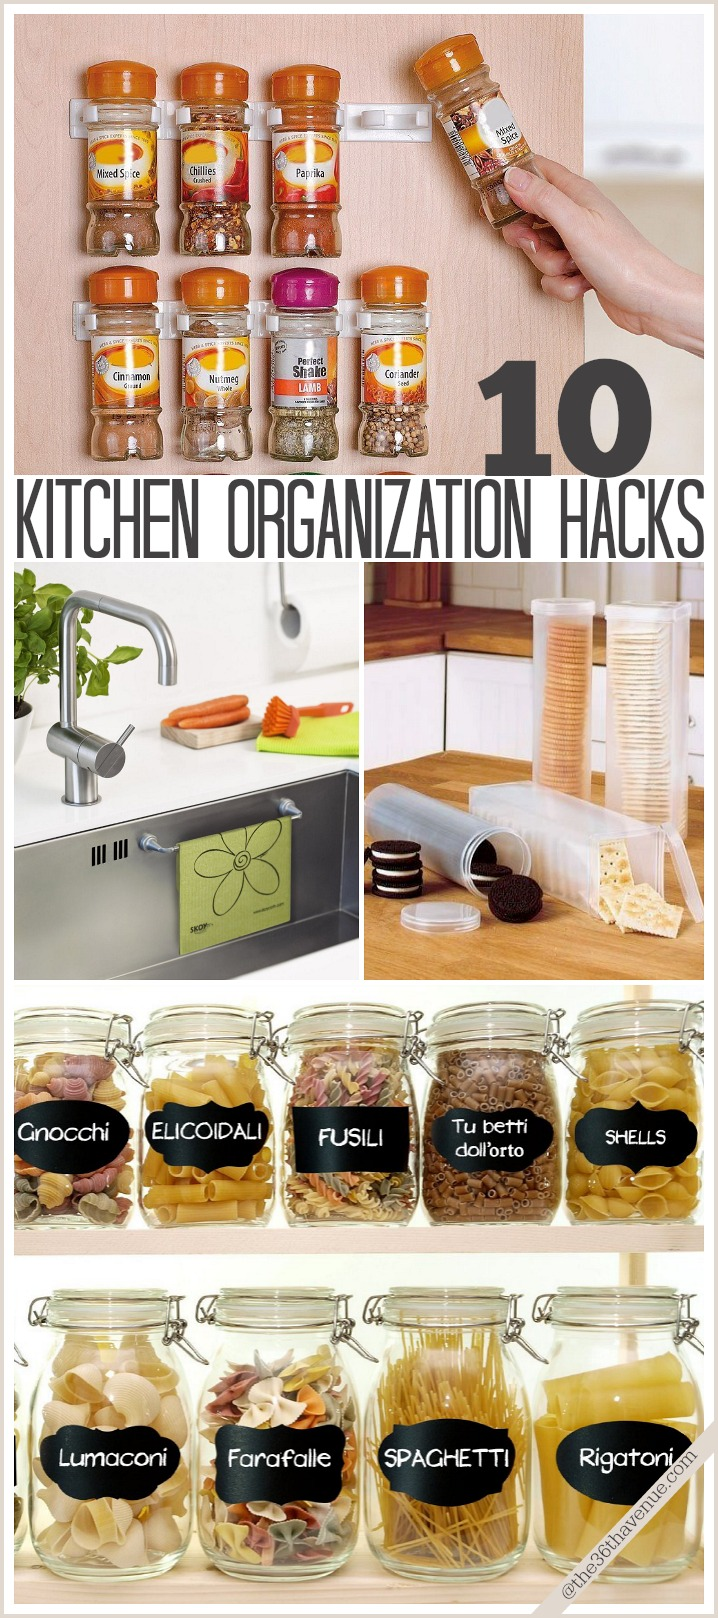 Kitchen Organization Hacks at the36thavenue.com